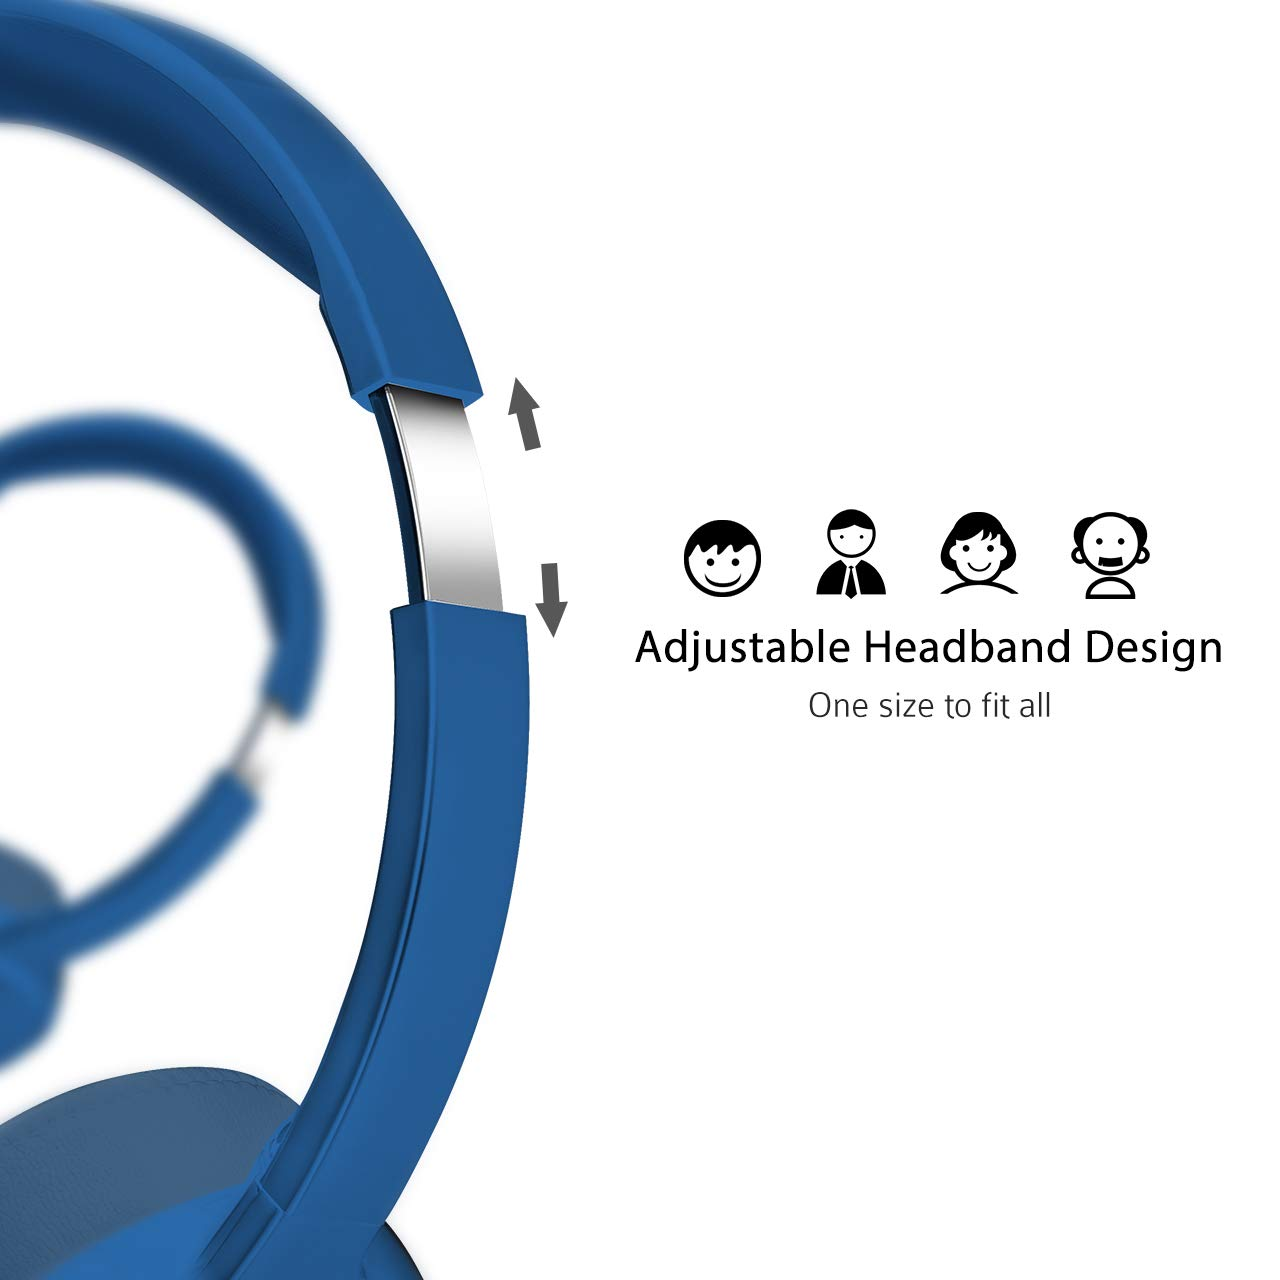 Blue Multi-Use USB Headset /& 3.5mm Chat Headset Office Headset Gaming Headset VOIP Headset Skype Headset In-line Control Mac PC Moblie Phone Mpow PC Headset Built-in Noise Reduction Sound Card